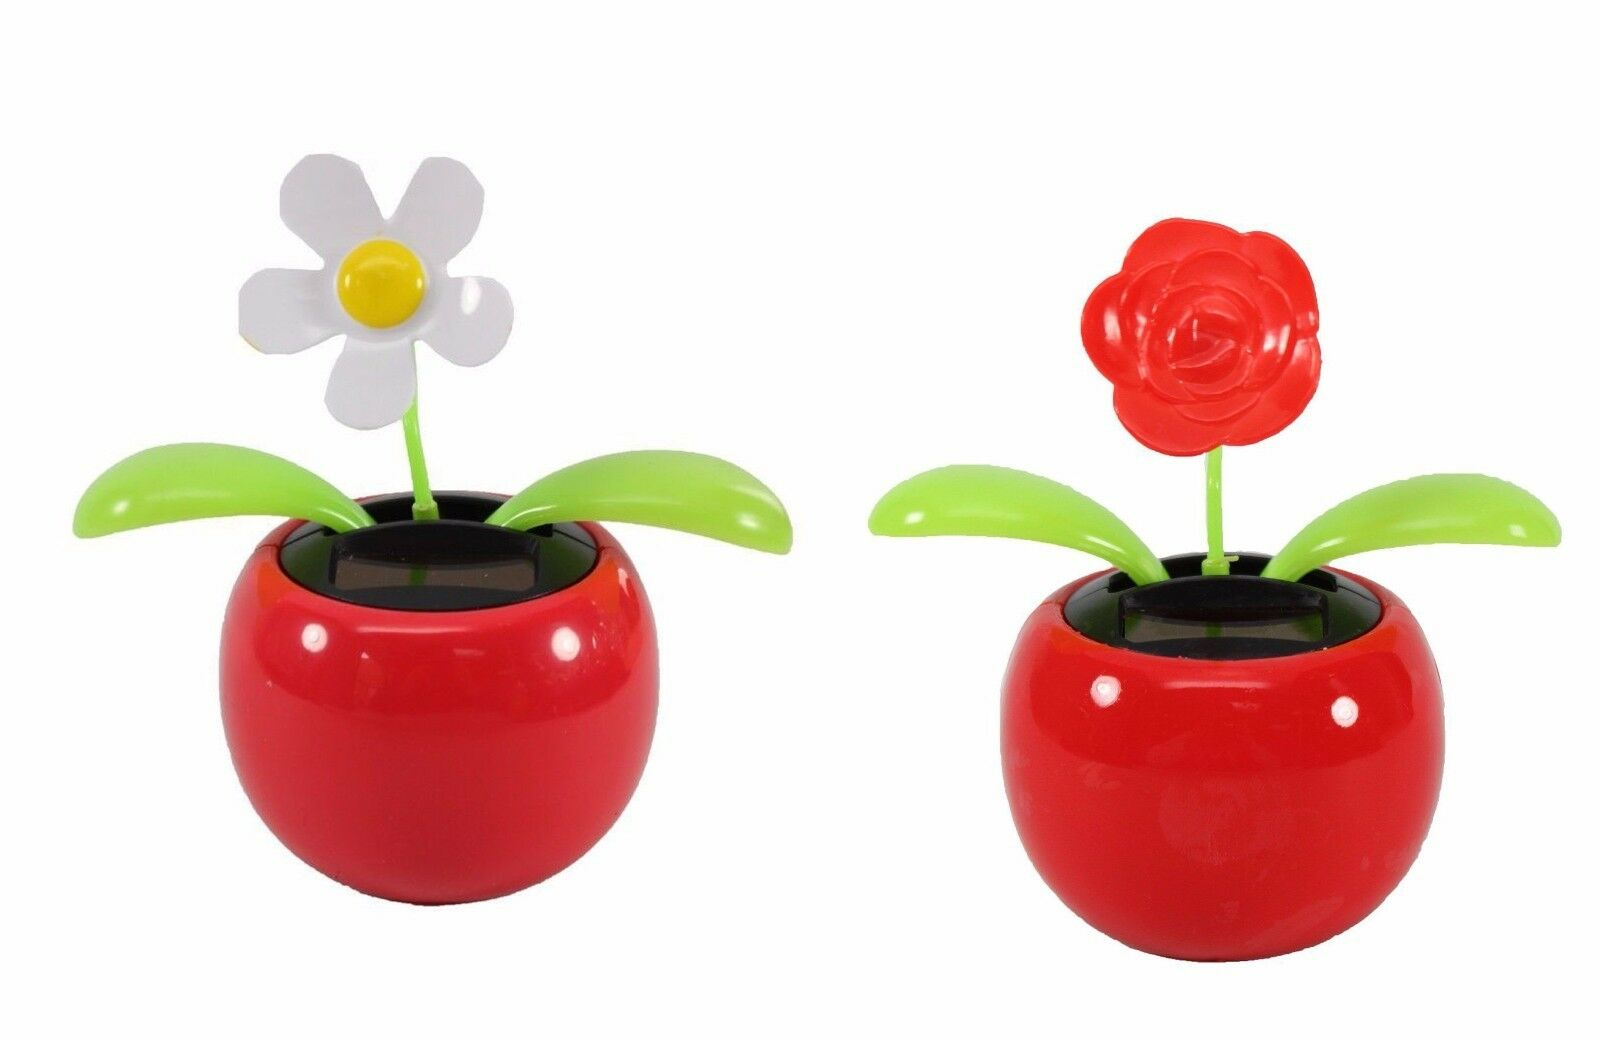 Dancing flower 1 daisy 1 rose solar toy us seller car home decor 1 of 1free shipping izmirmasajfo